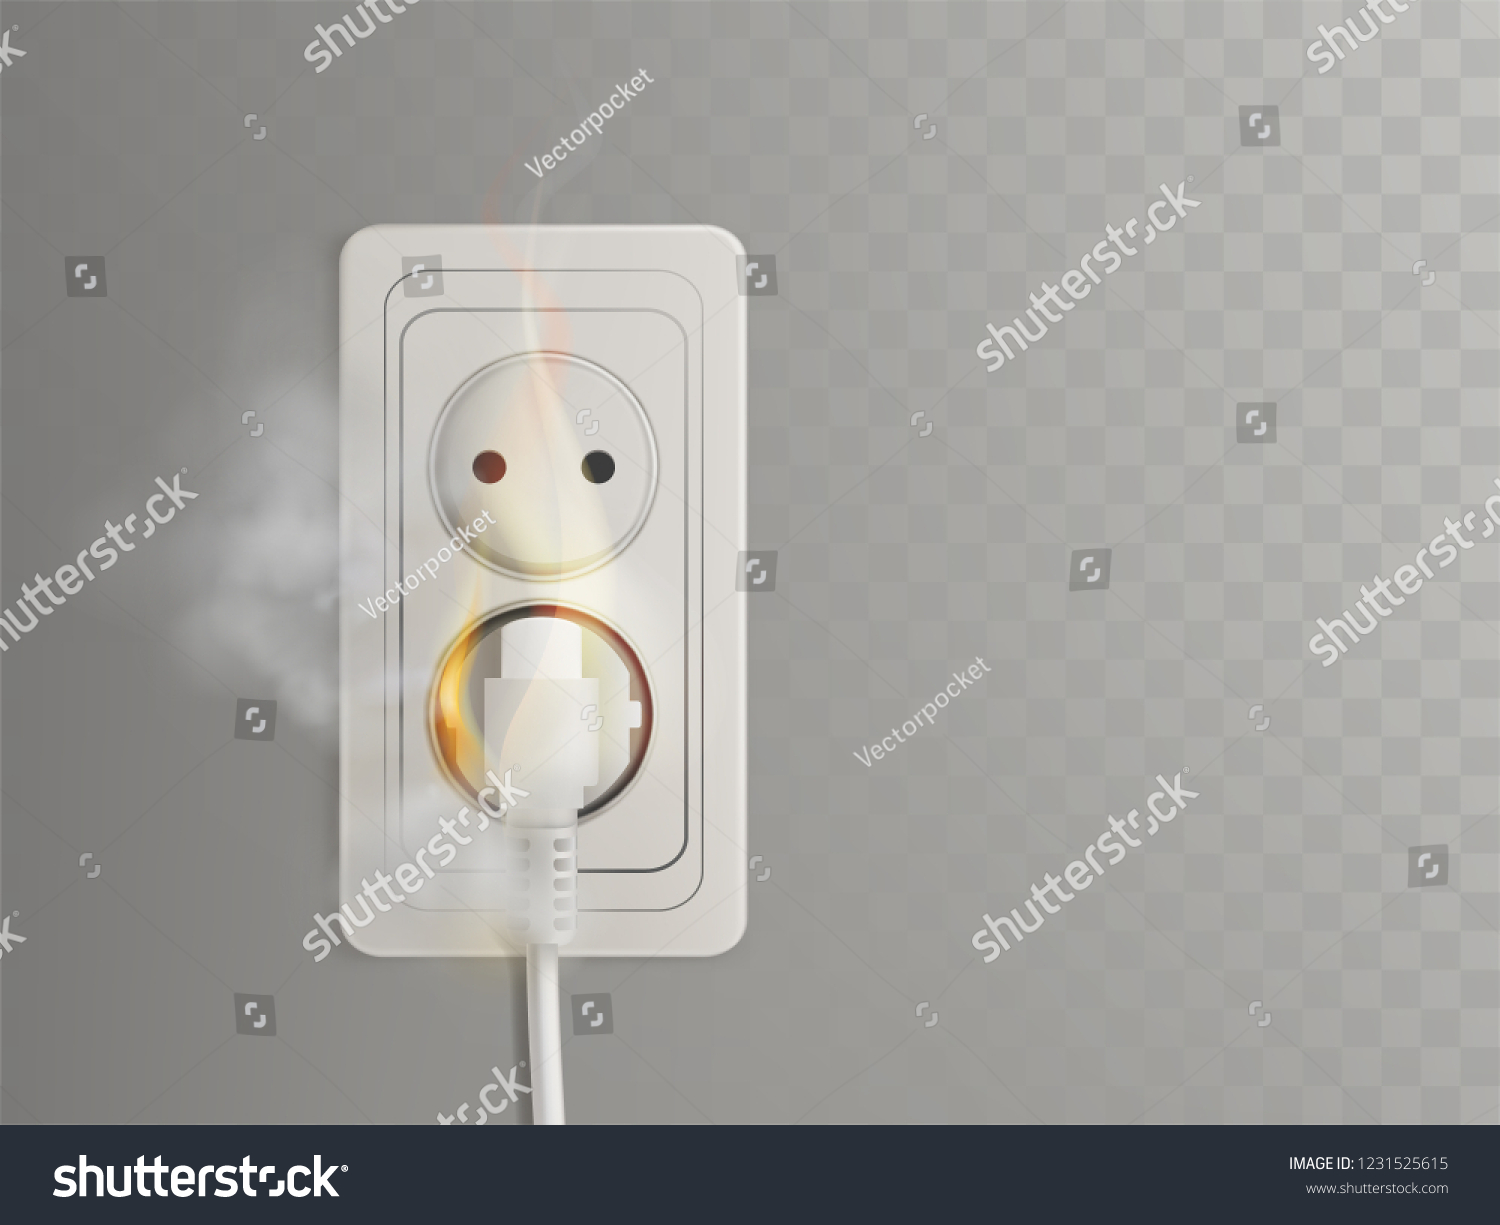 Short Circuit Electrical Outlet 3 D Realistic Stock Vector Royalty Home Wiring Wall Plate In 3d With Flaming Power Plug Socket Illustration Isolated